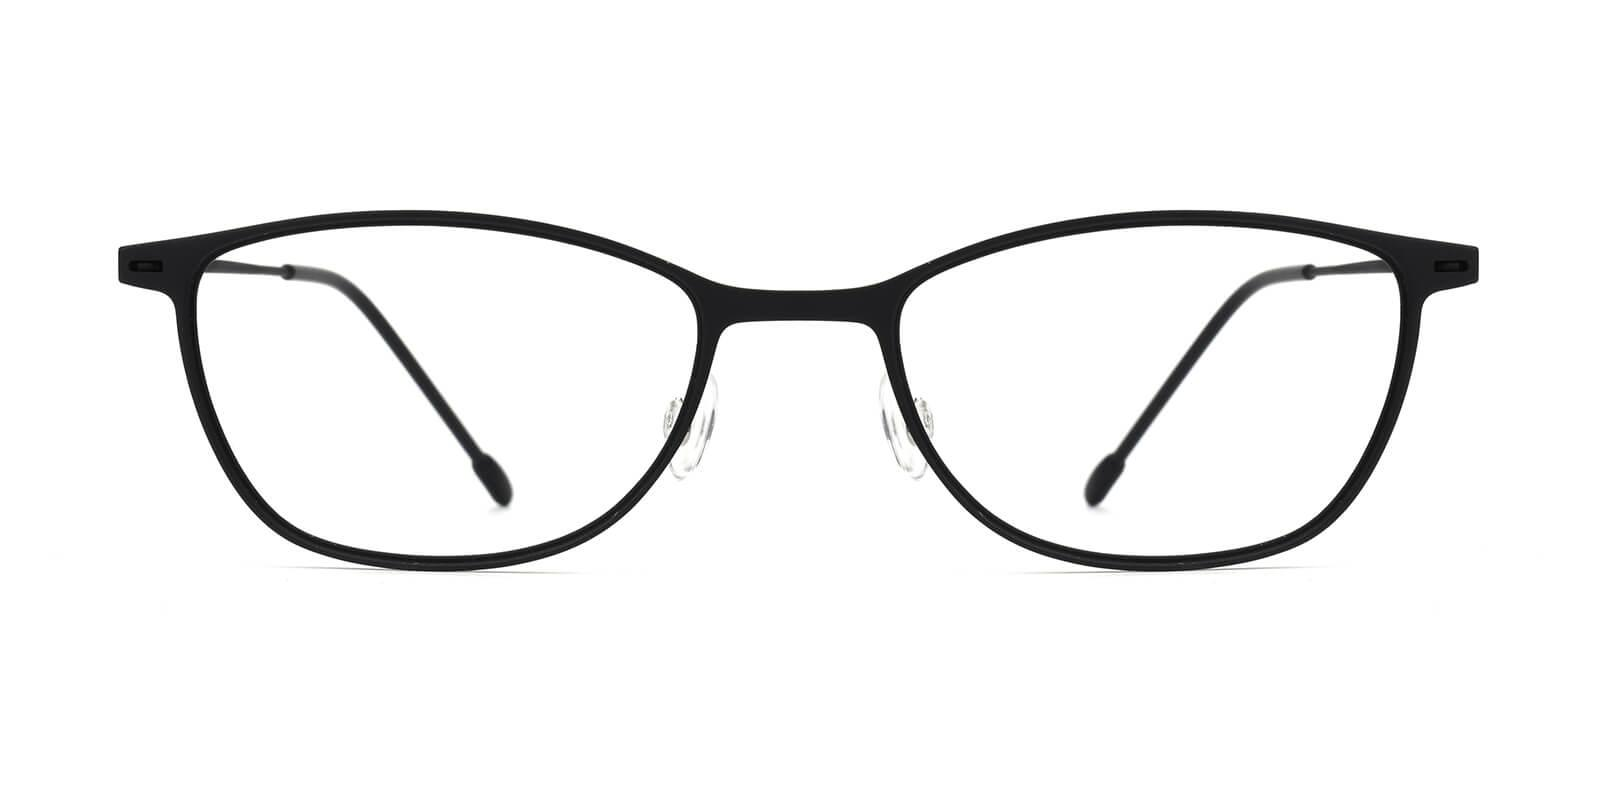 Pridgen-Black-Rectangle / Cat-Combination-Eyeglasses-additional2